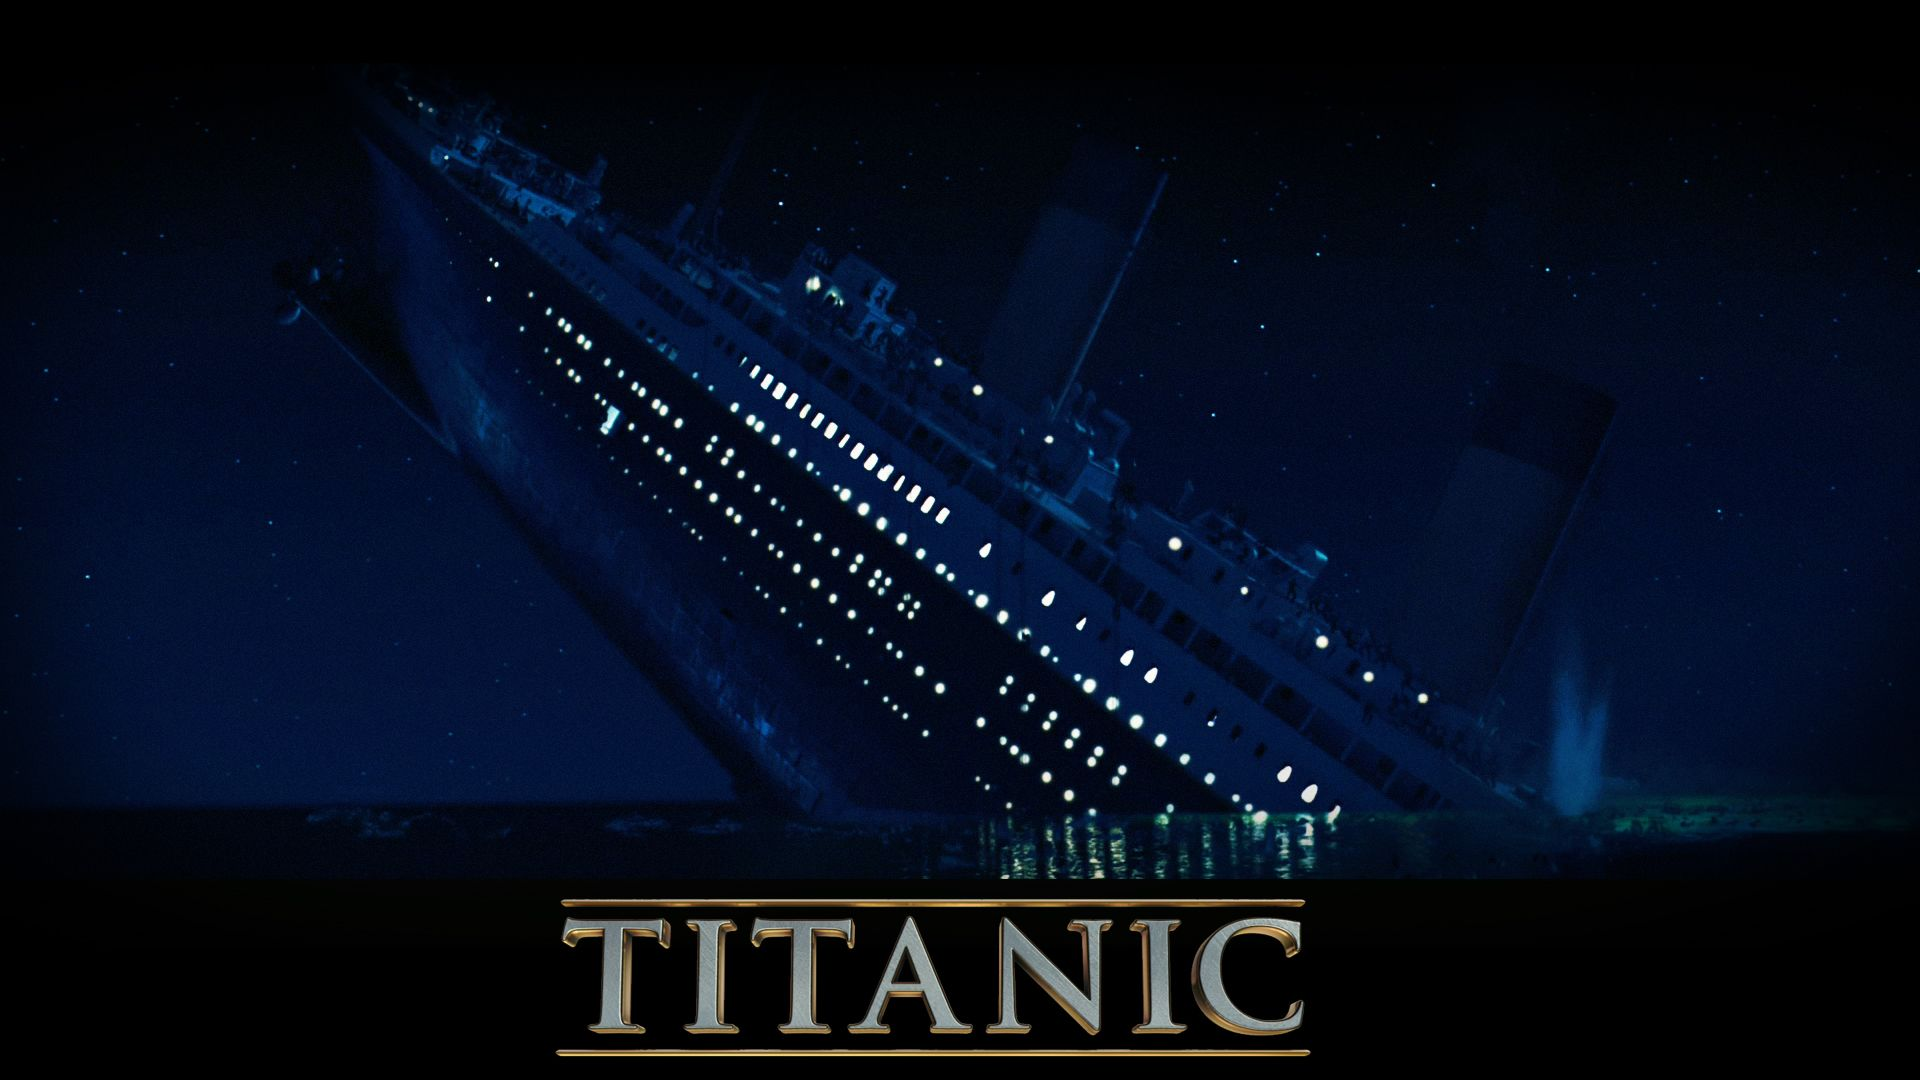 titanic ship wreck 3d movie image gallery wallpapers 1920×1080